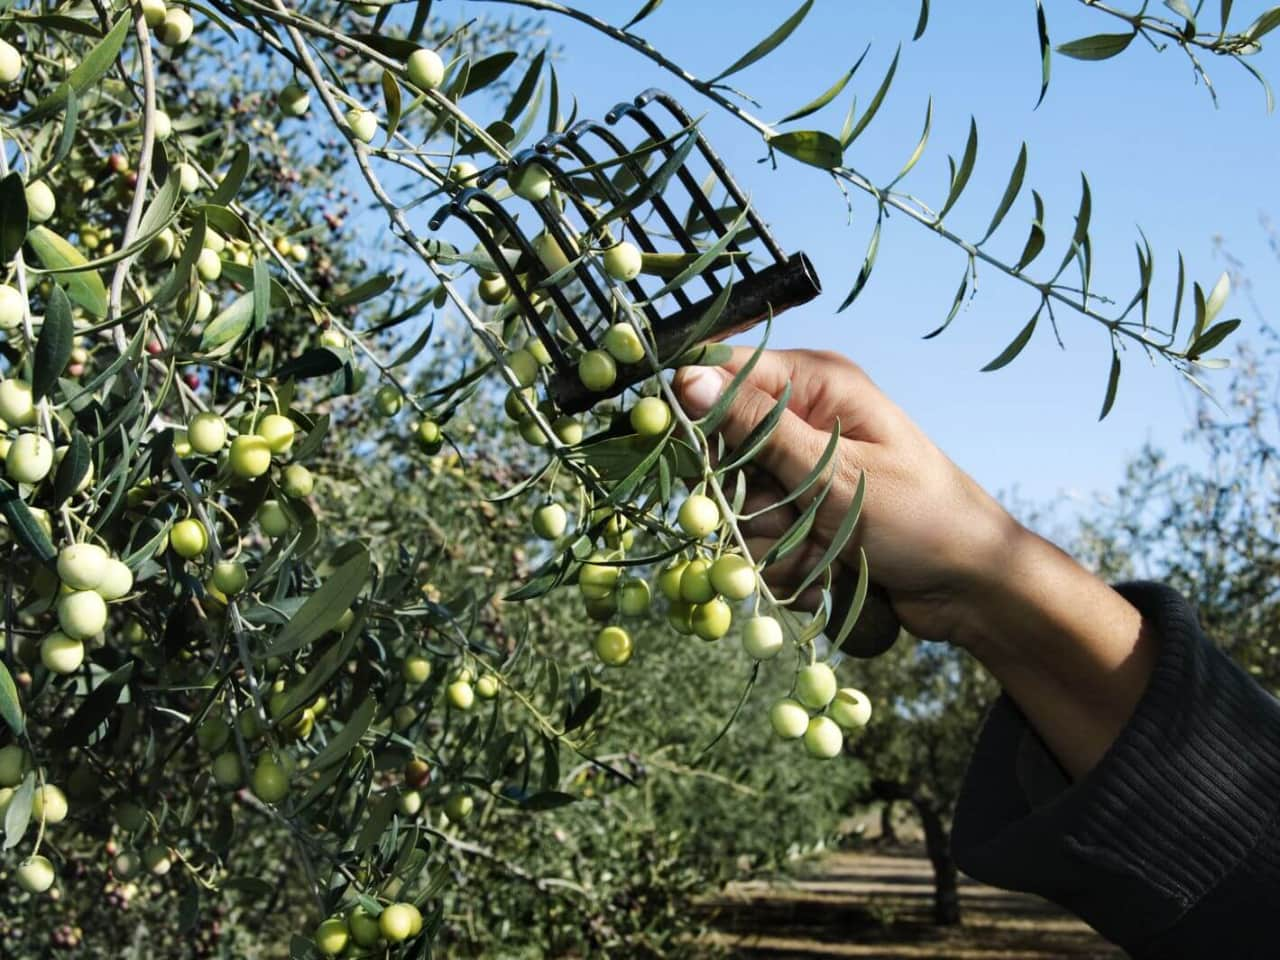 Olive Oil Tasting Tours at Pallada Mill, chania olive oil tasting tours, tasting extra virgin olive oil chania crete, activities chania crete, best organic olive oil tasting tour chania, cretan olive oil activity, things to do chania crete